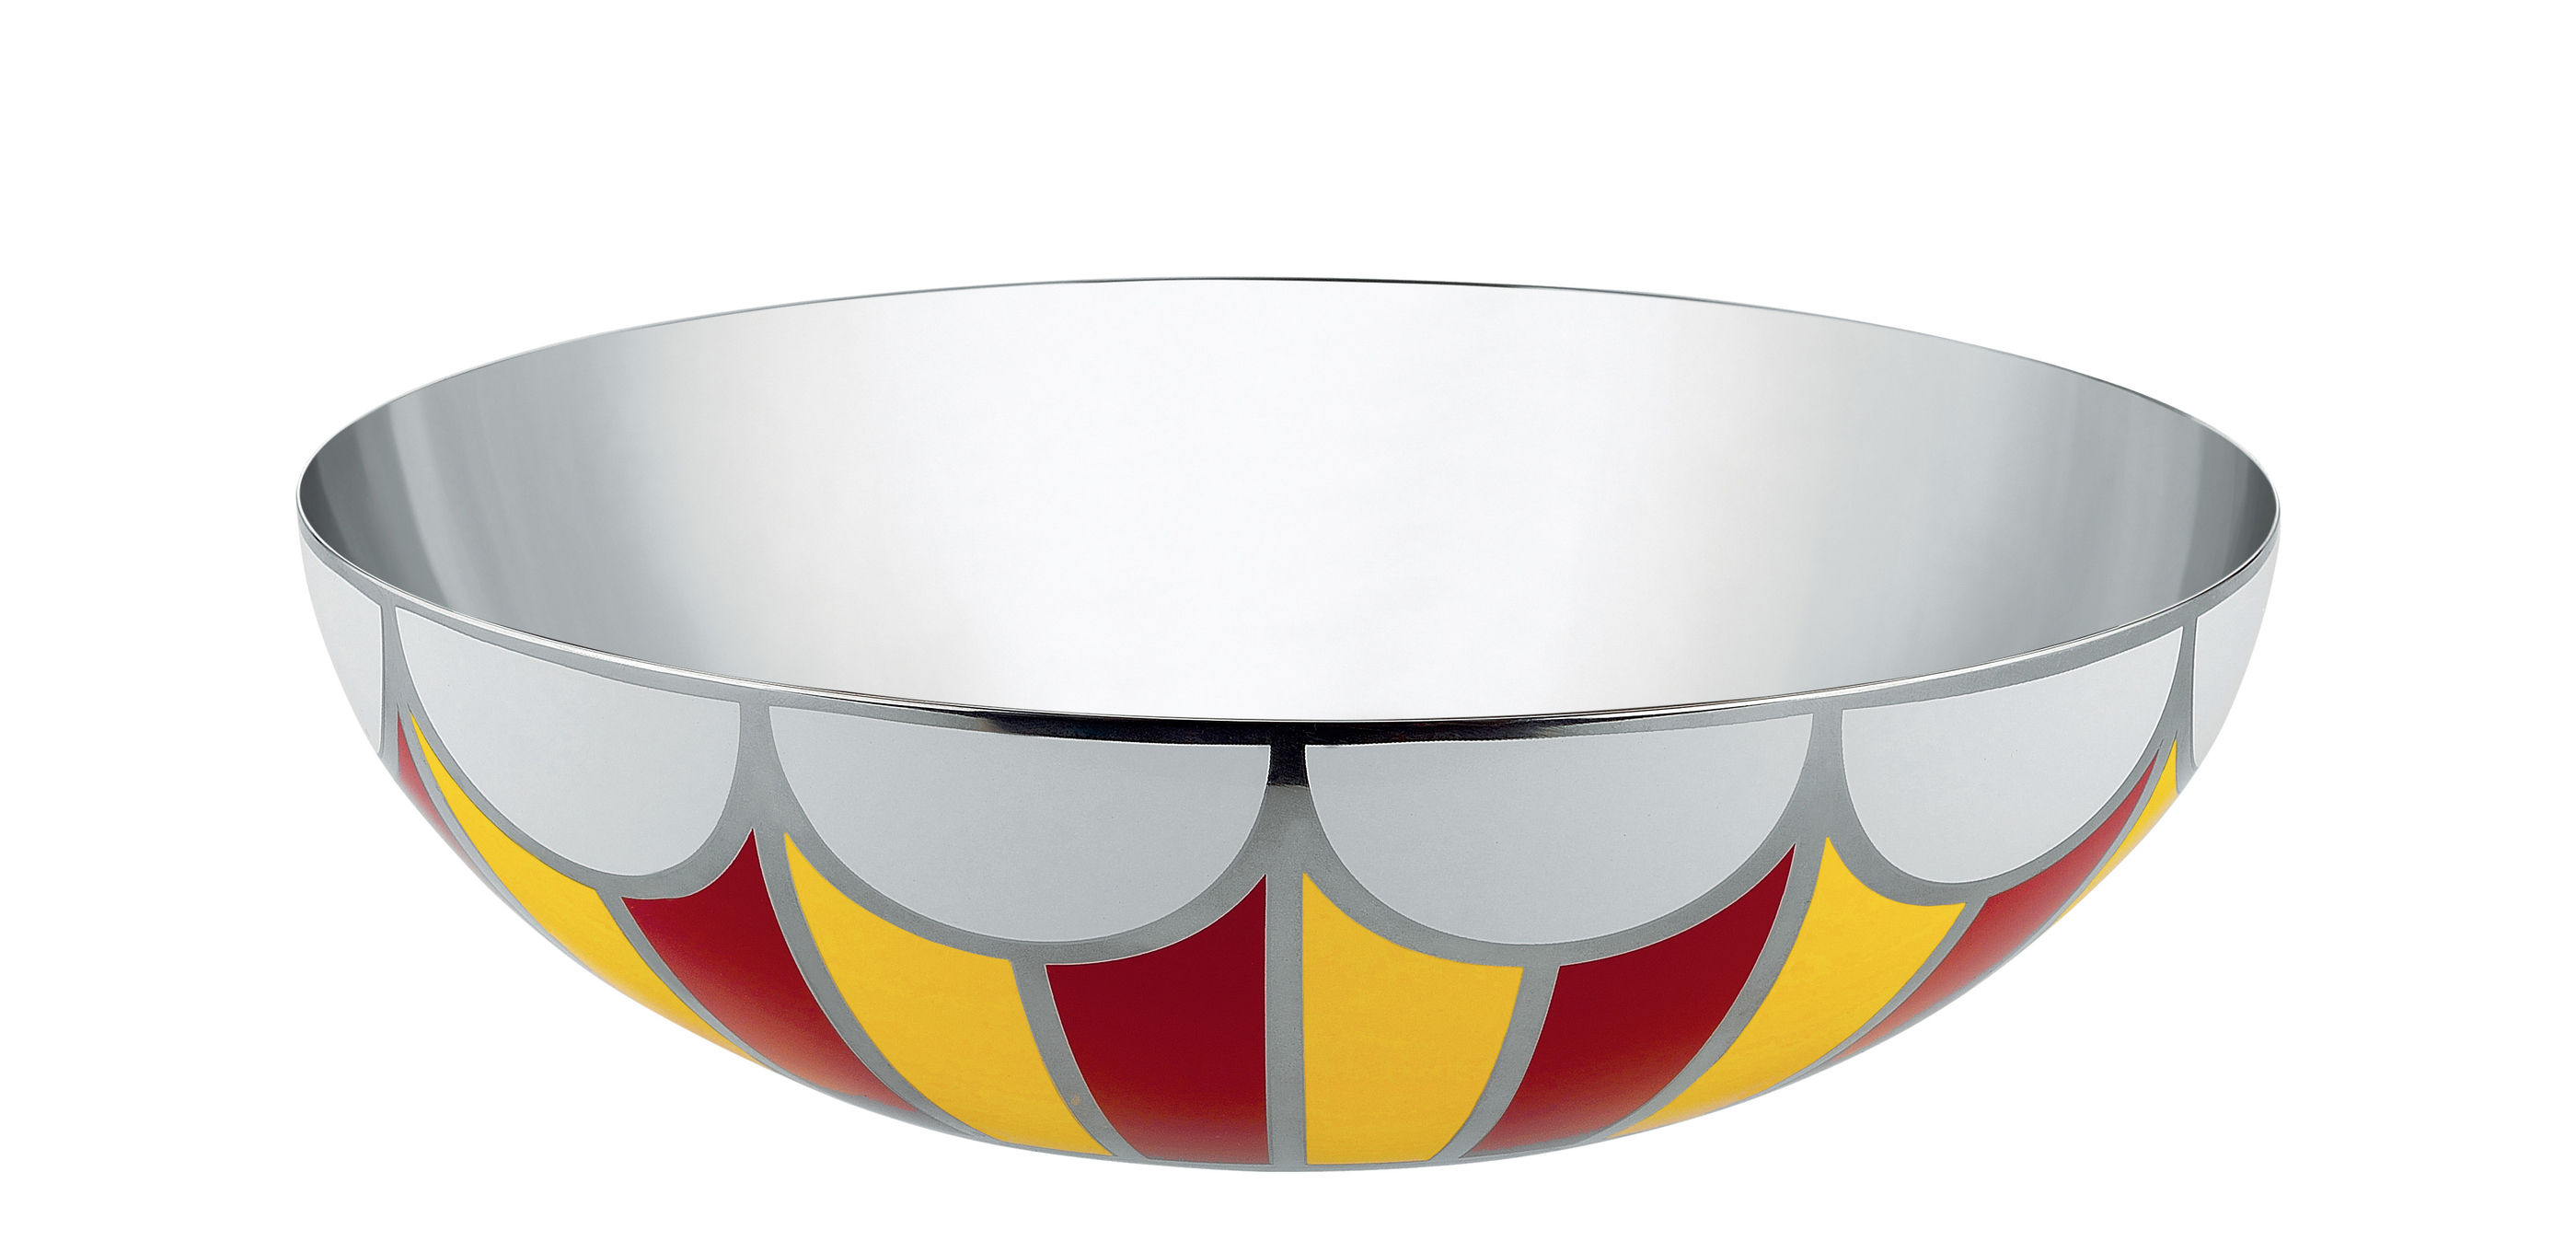 Tableware - Bowls - Circus Bowl - Ø 25 cm by Alessi - Ø 25 cm / Red - Painted stainless steel